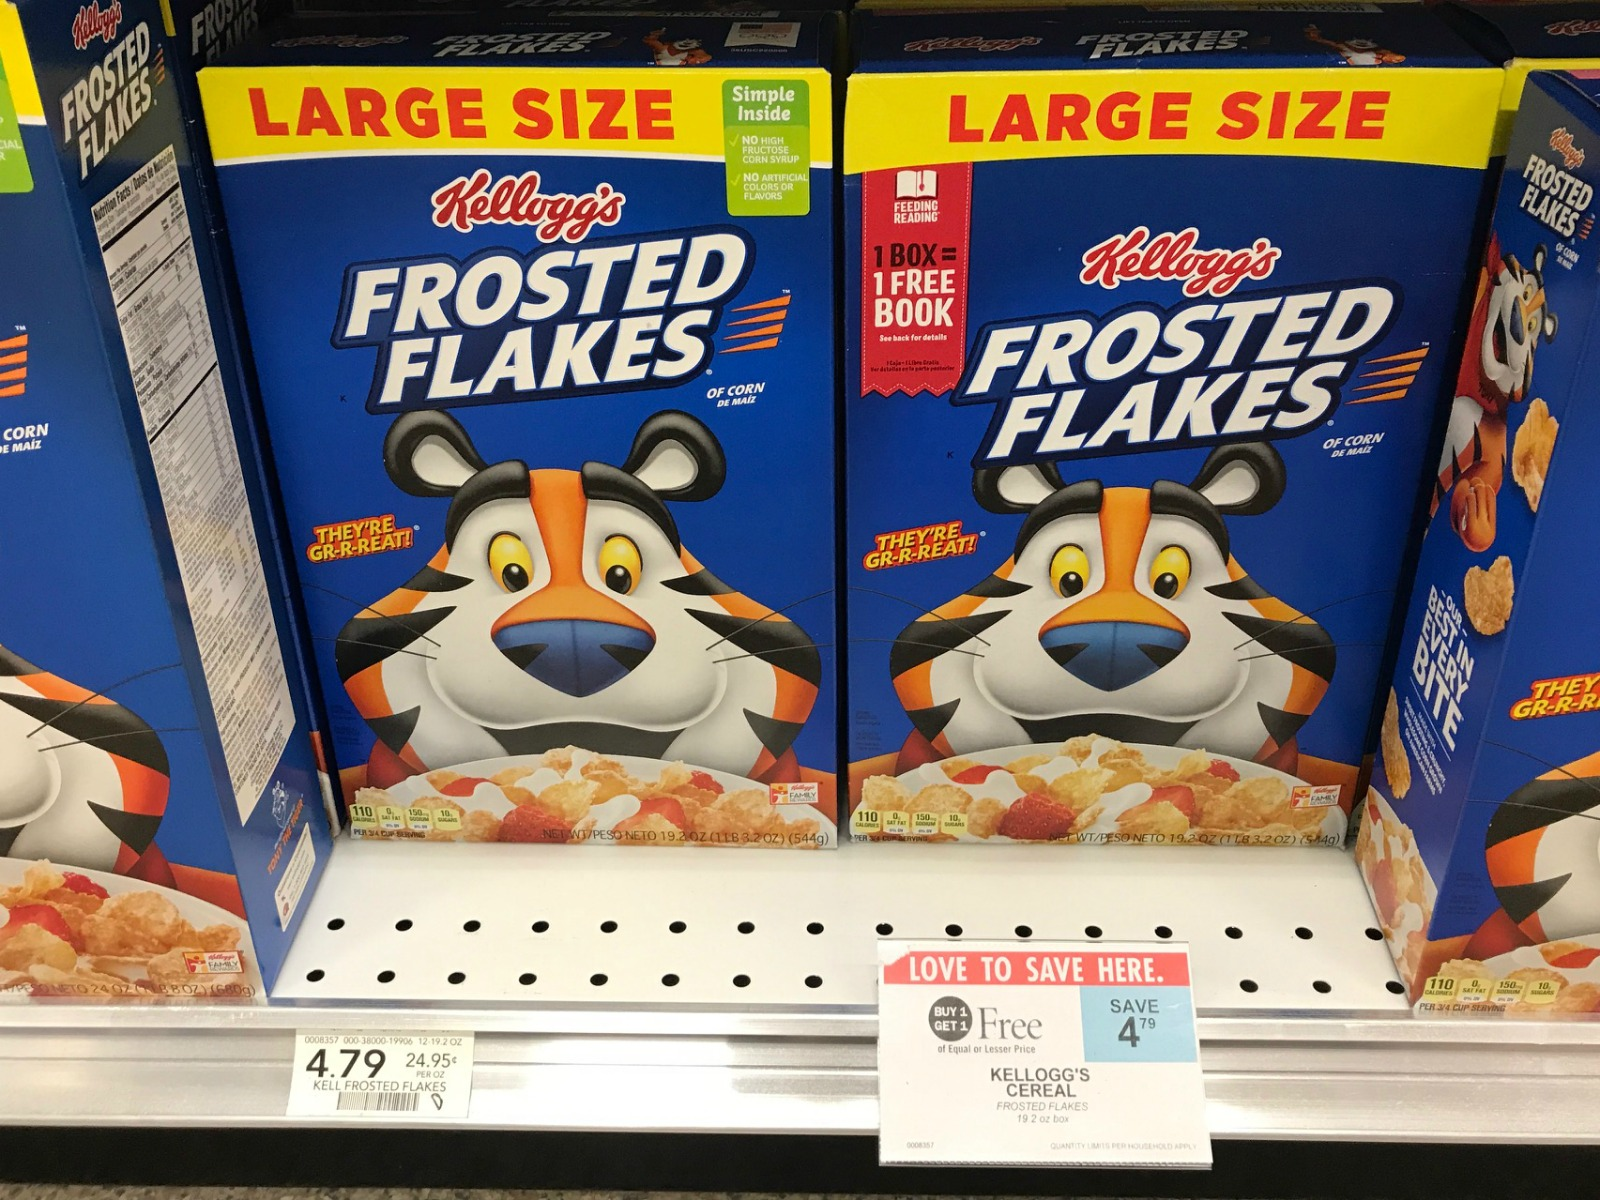 Stock Up On Frosted Flakes And Froot Loops During The BOGO Sale At Publix on I Heart Publix